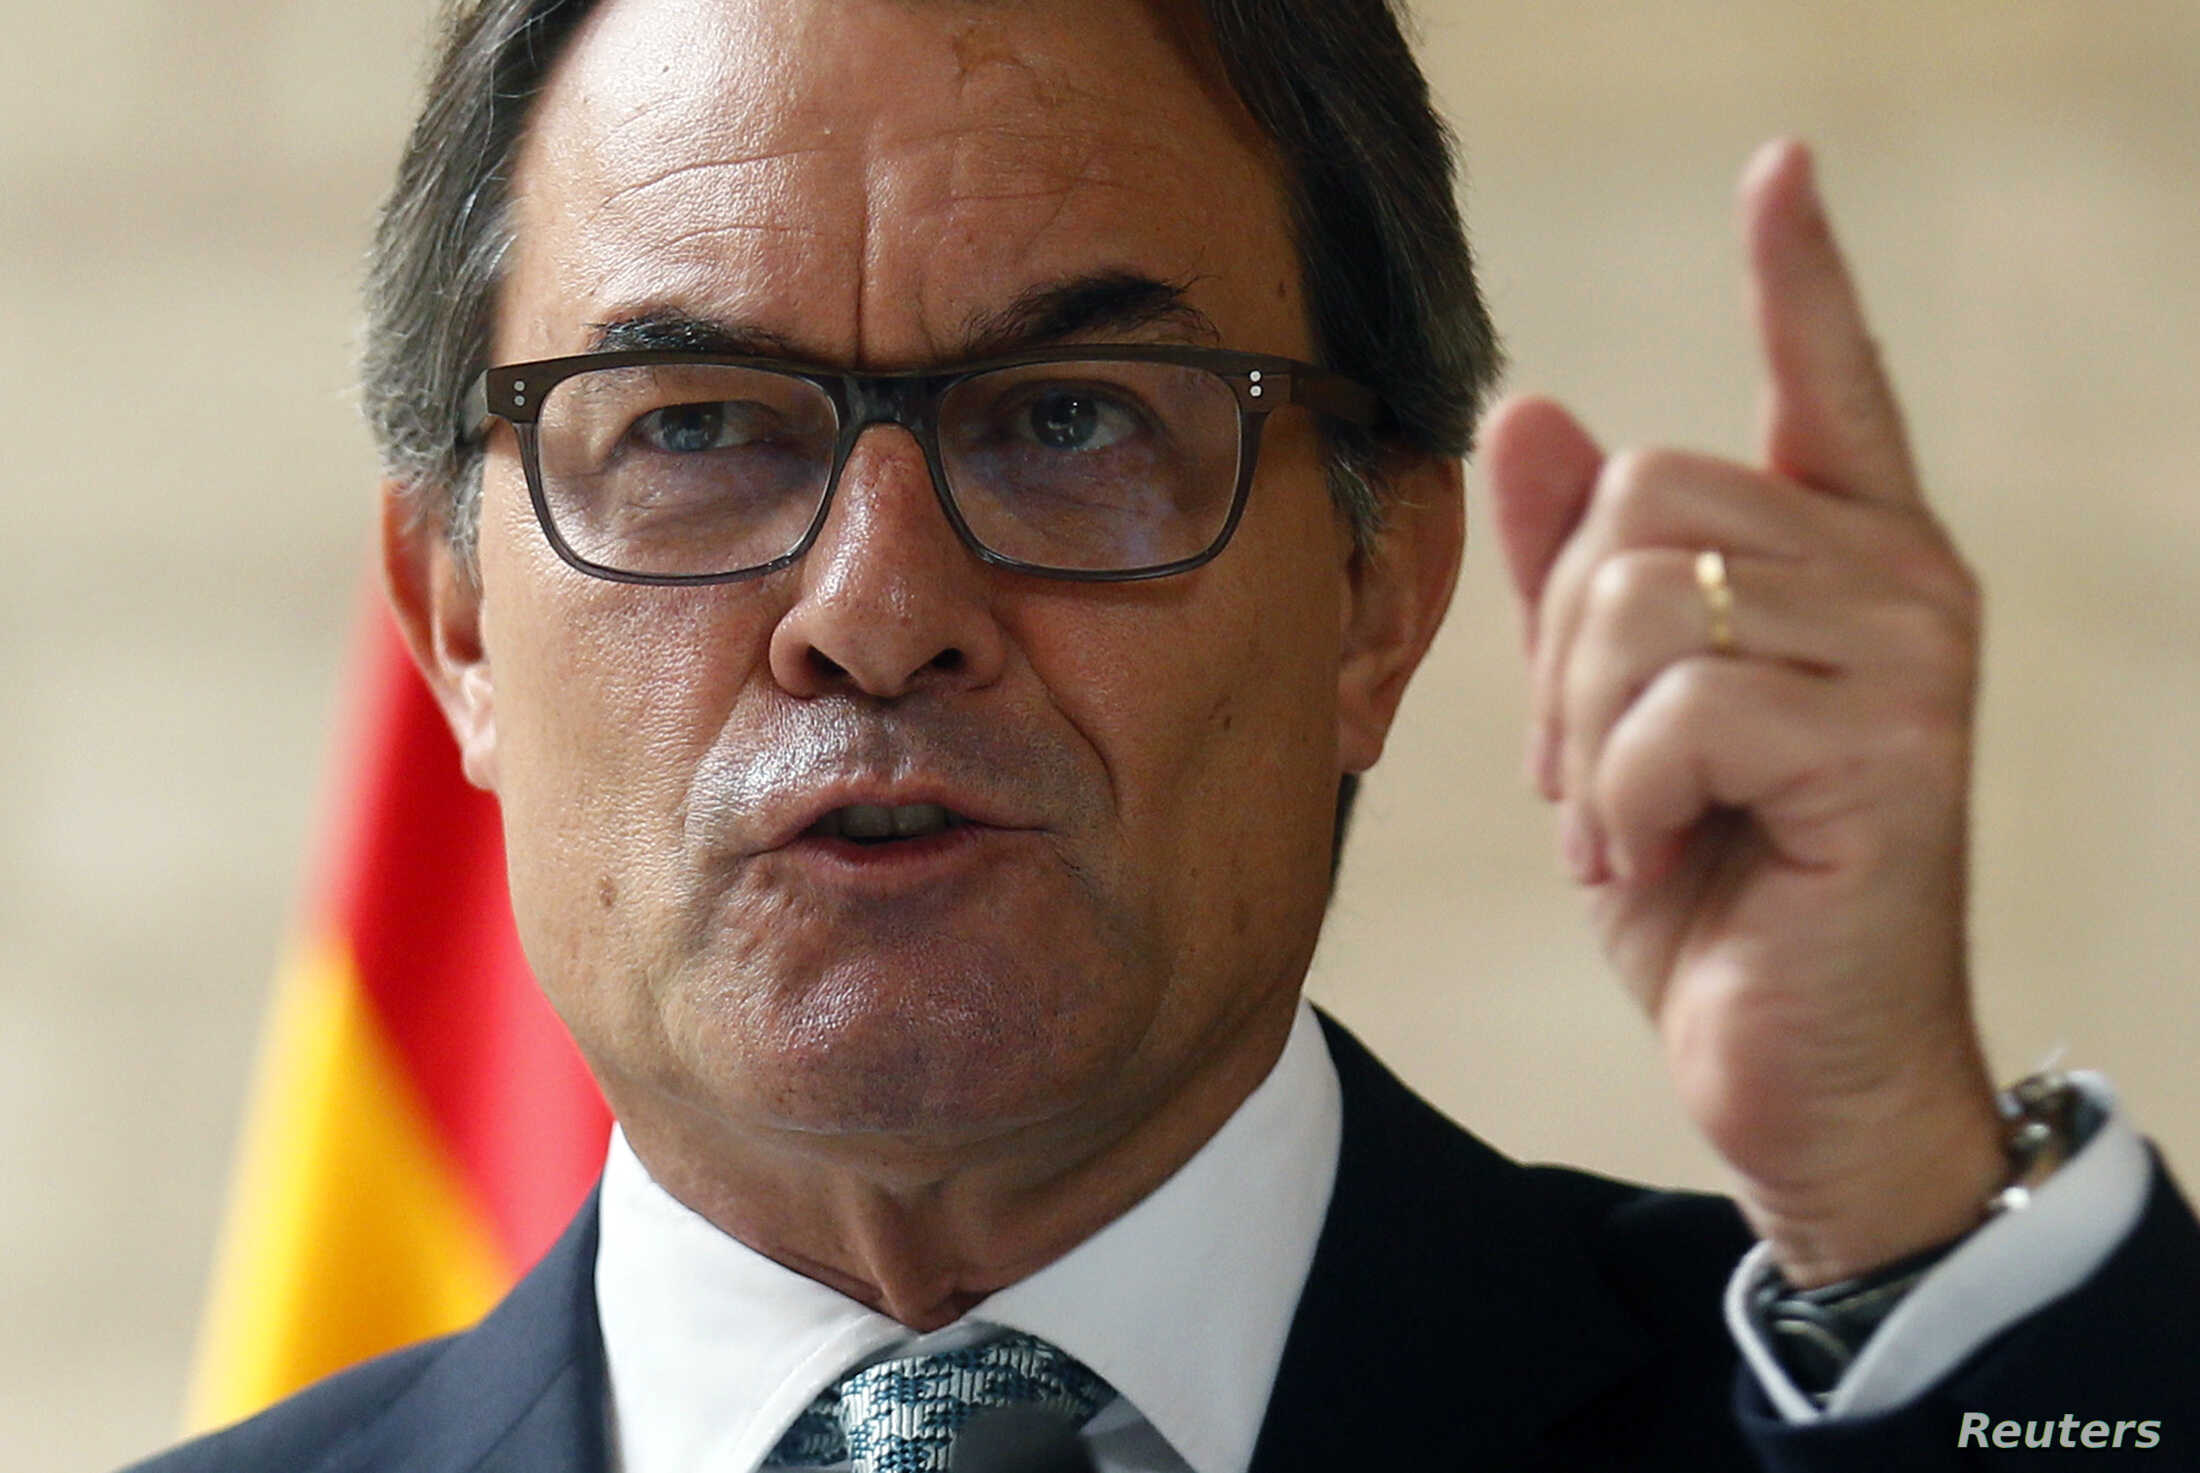 Catalan regional president Artur Mas gestures during a news conference at Palau de la Generalitat in Barcelona, Oct. 14, 2014.